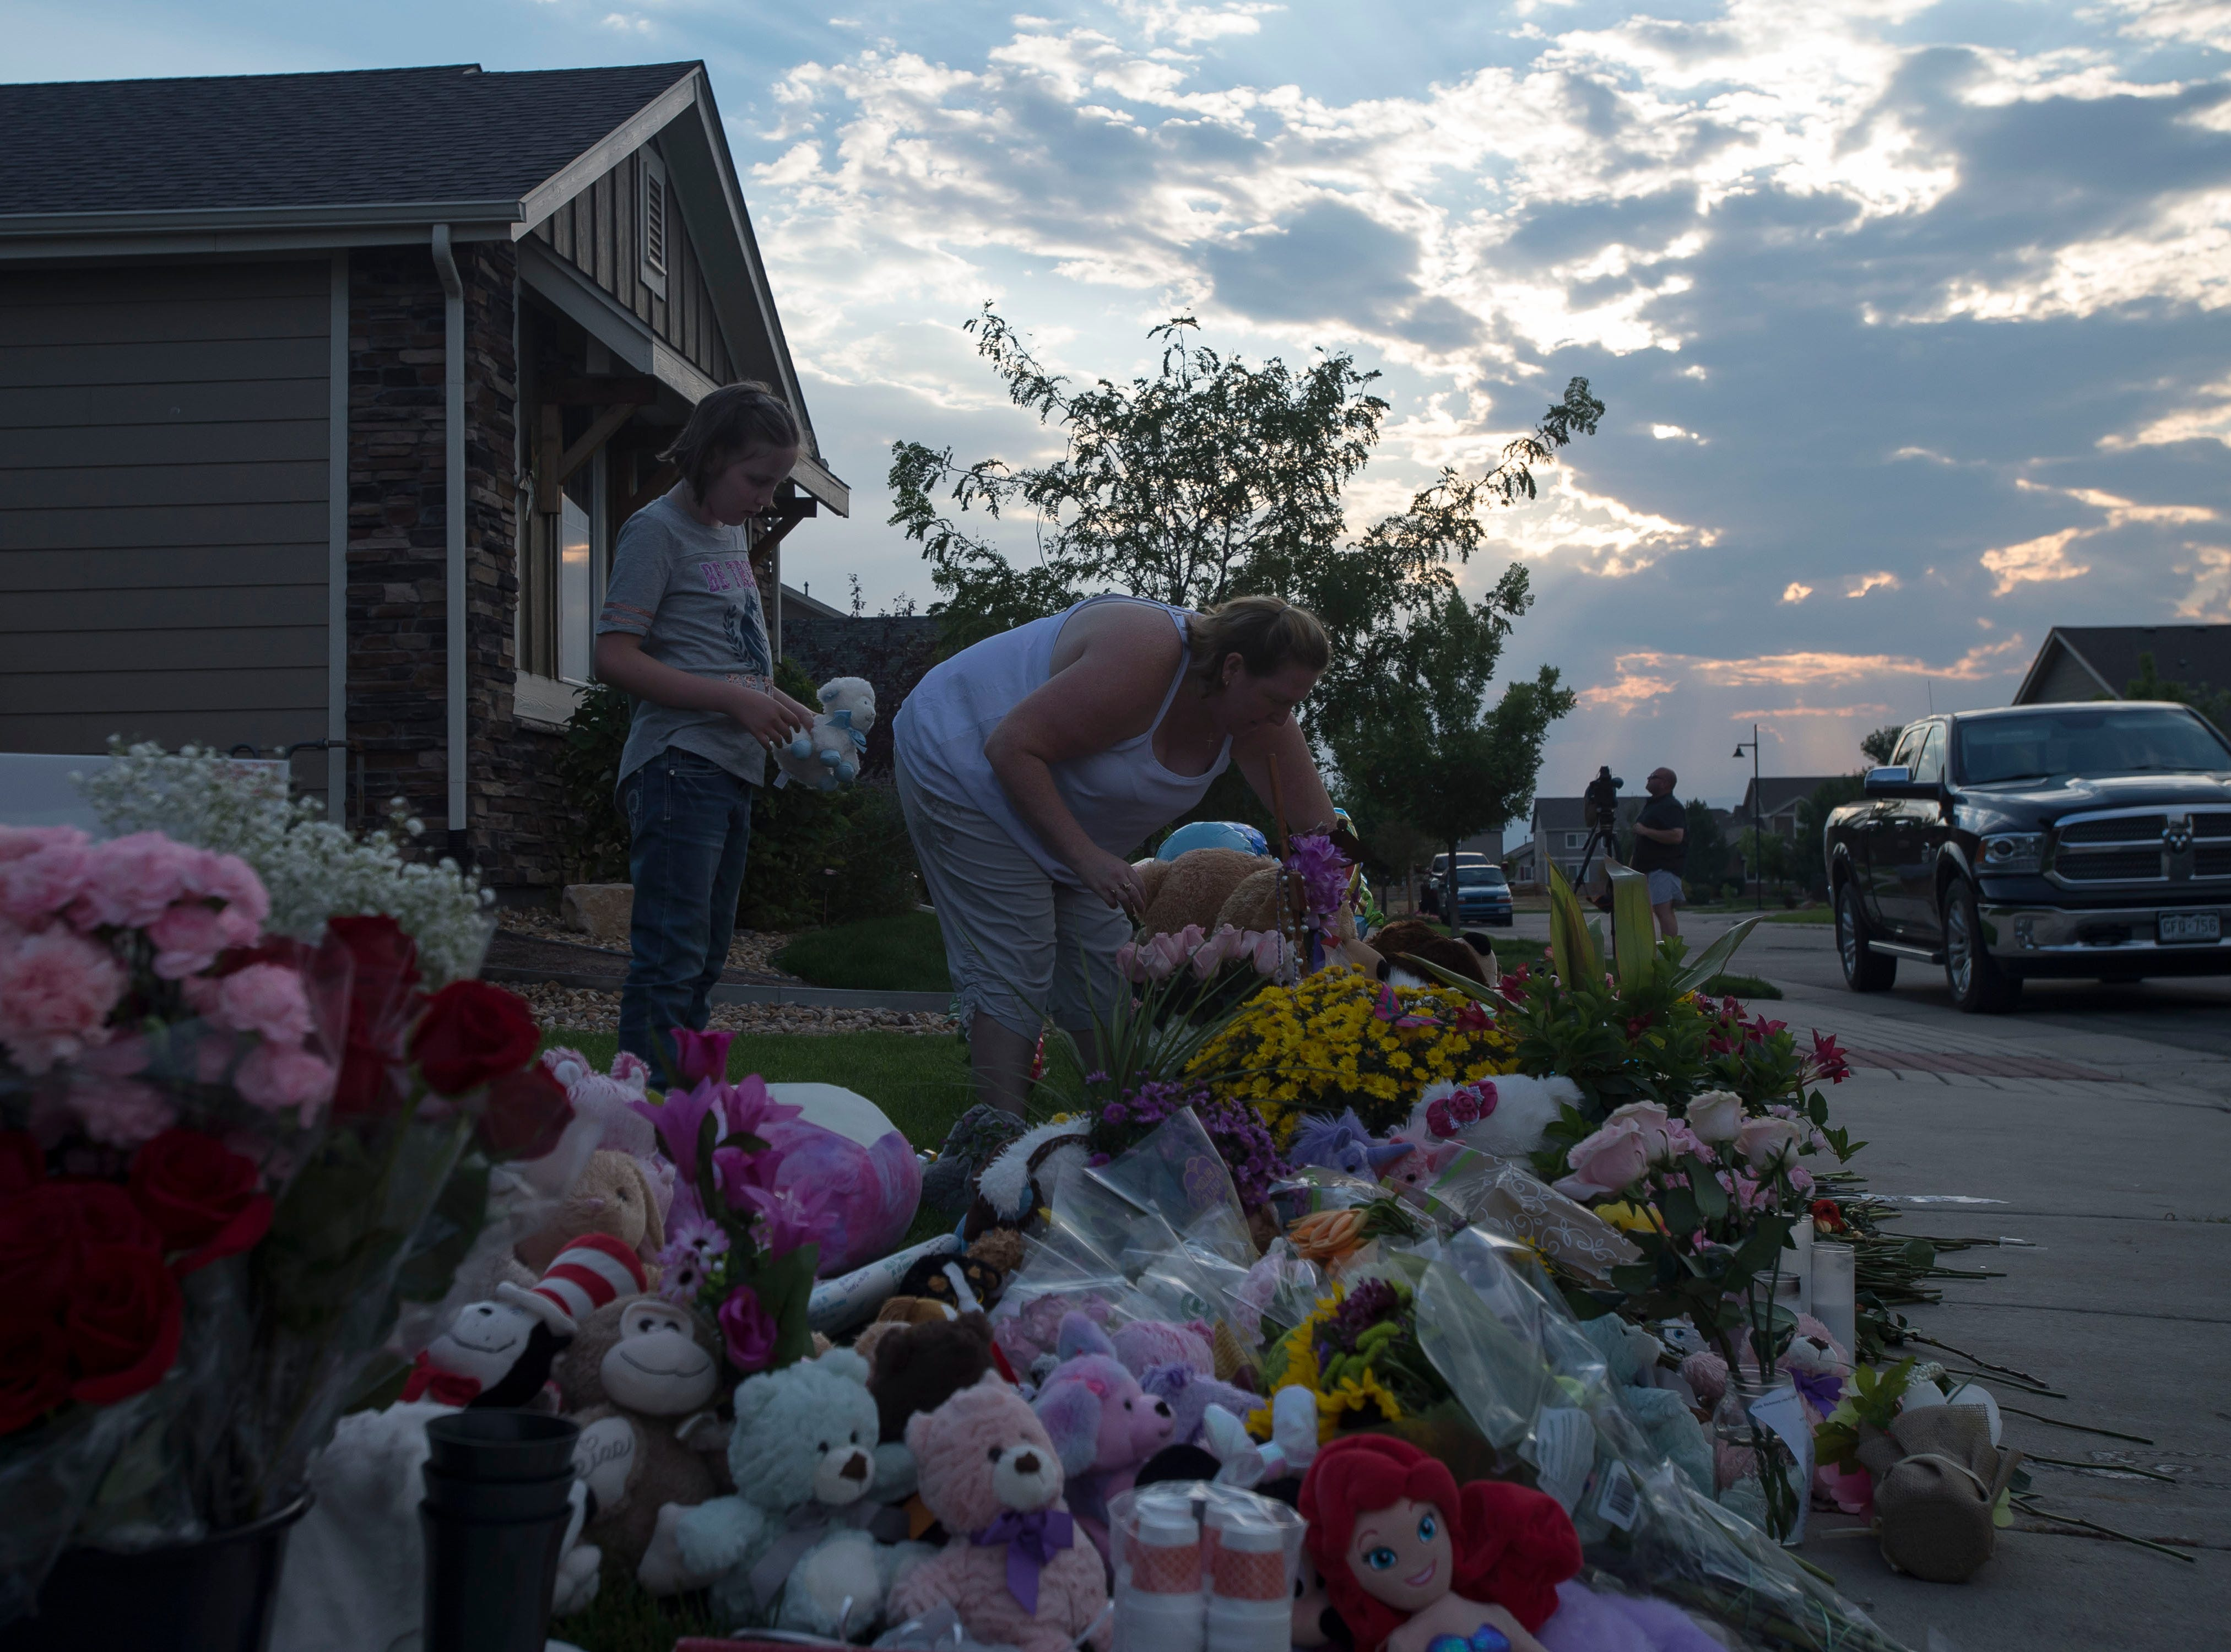 Kimberly and daughter Abigail Londen, 10, place flowers on a memorial before a candle-lit vigil for the slain Shanann Watts and her two daughters, Bella, 4, and Celeste, 3, in front of the Watts' family home on Friday, Aug. 17, 2018, in Frederick, Colo.